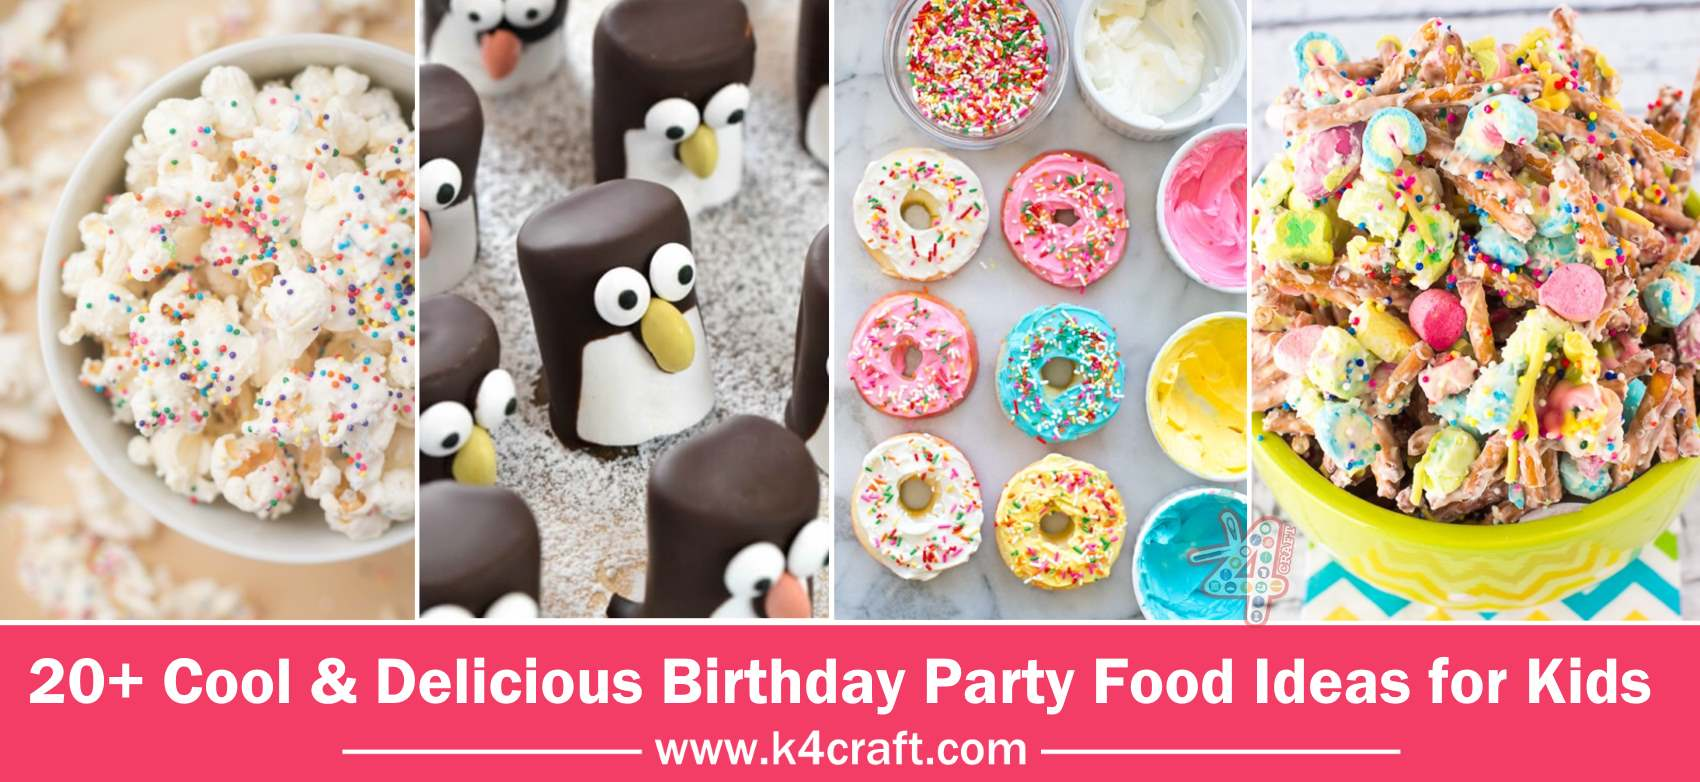 Cool delicious birthday party food ideas for kids k4 craft for Cool food ideas for kids